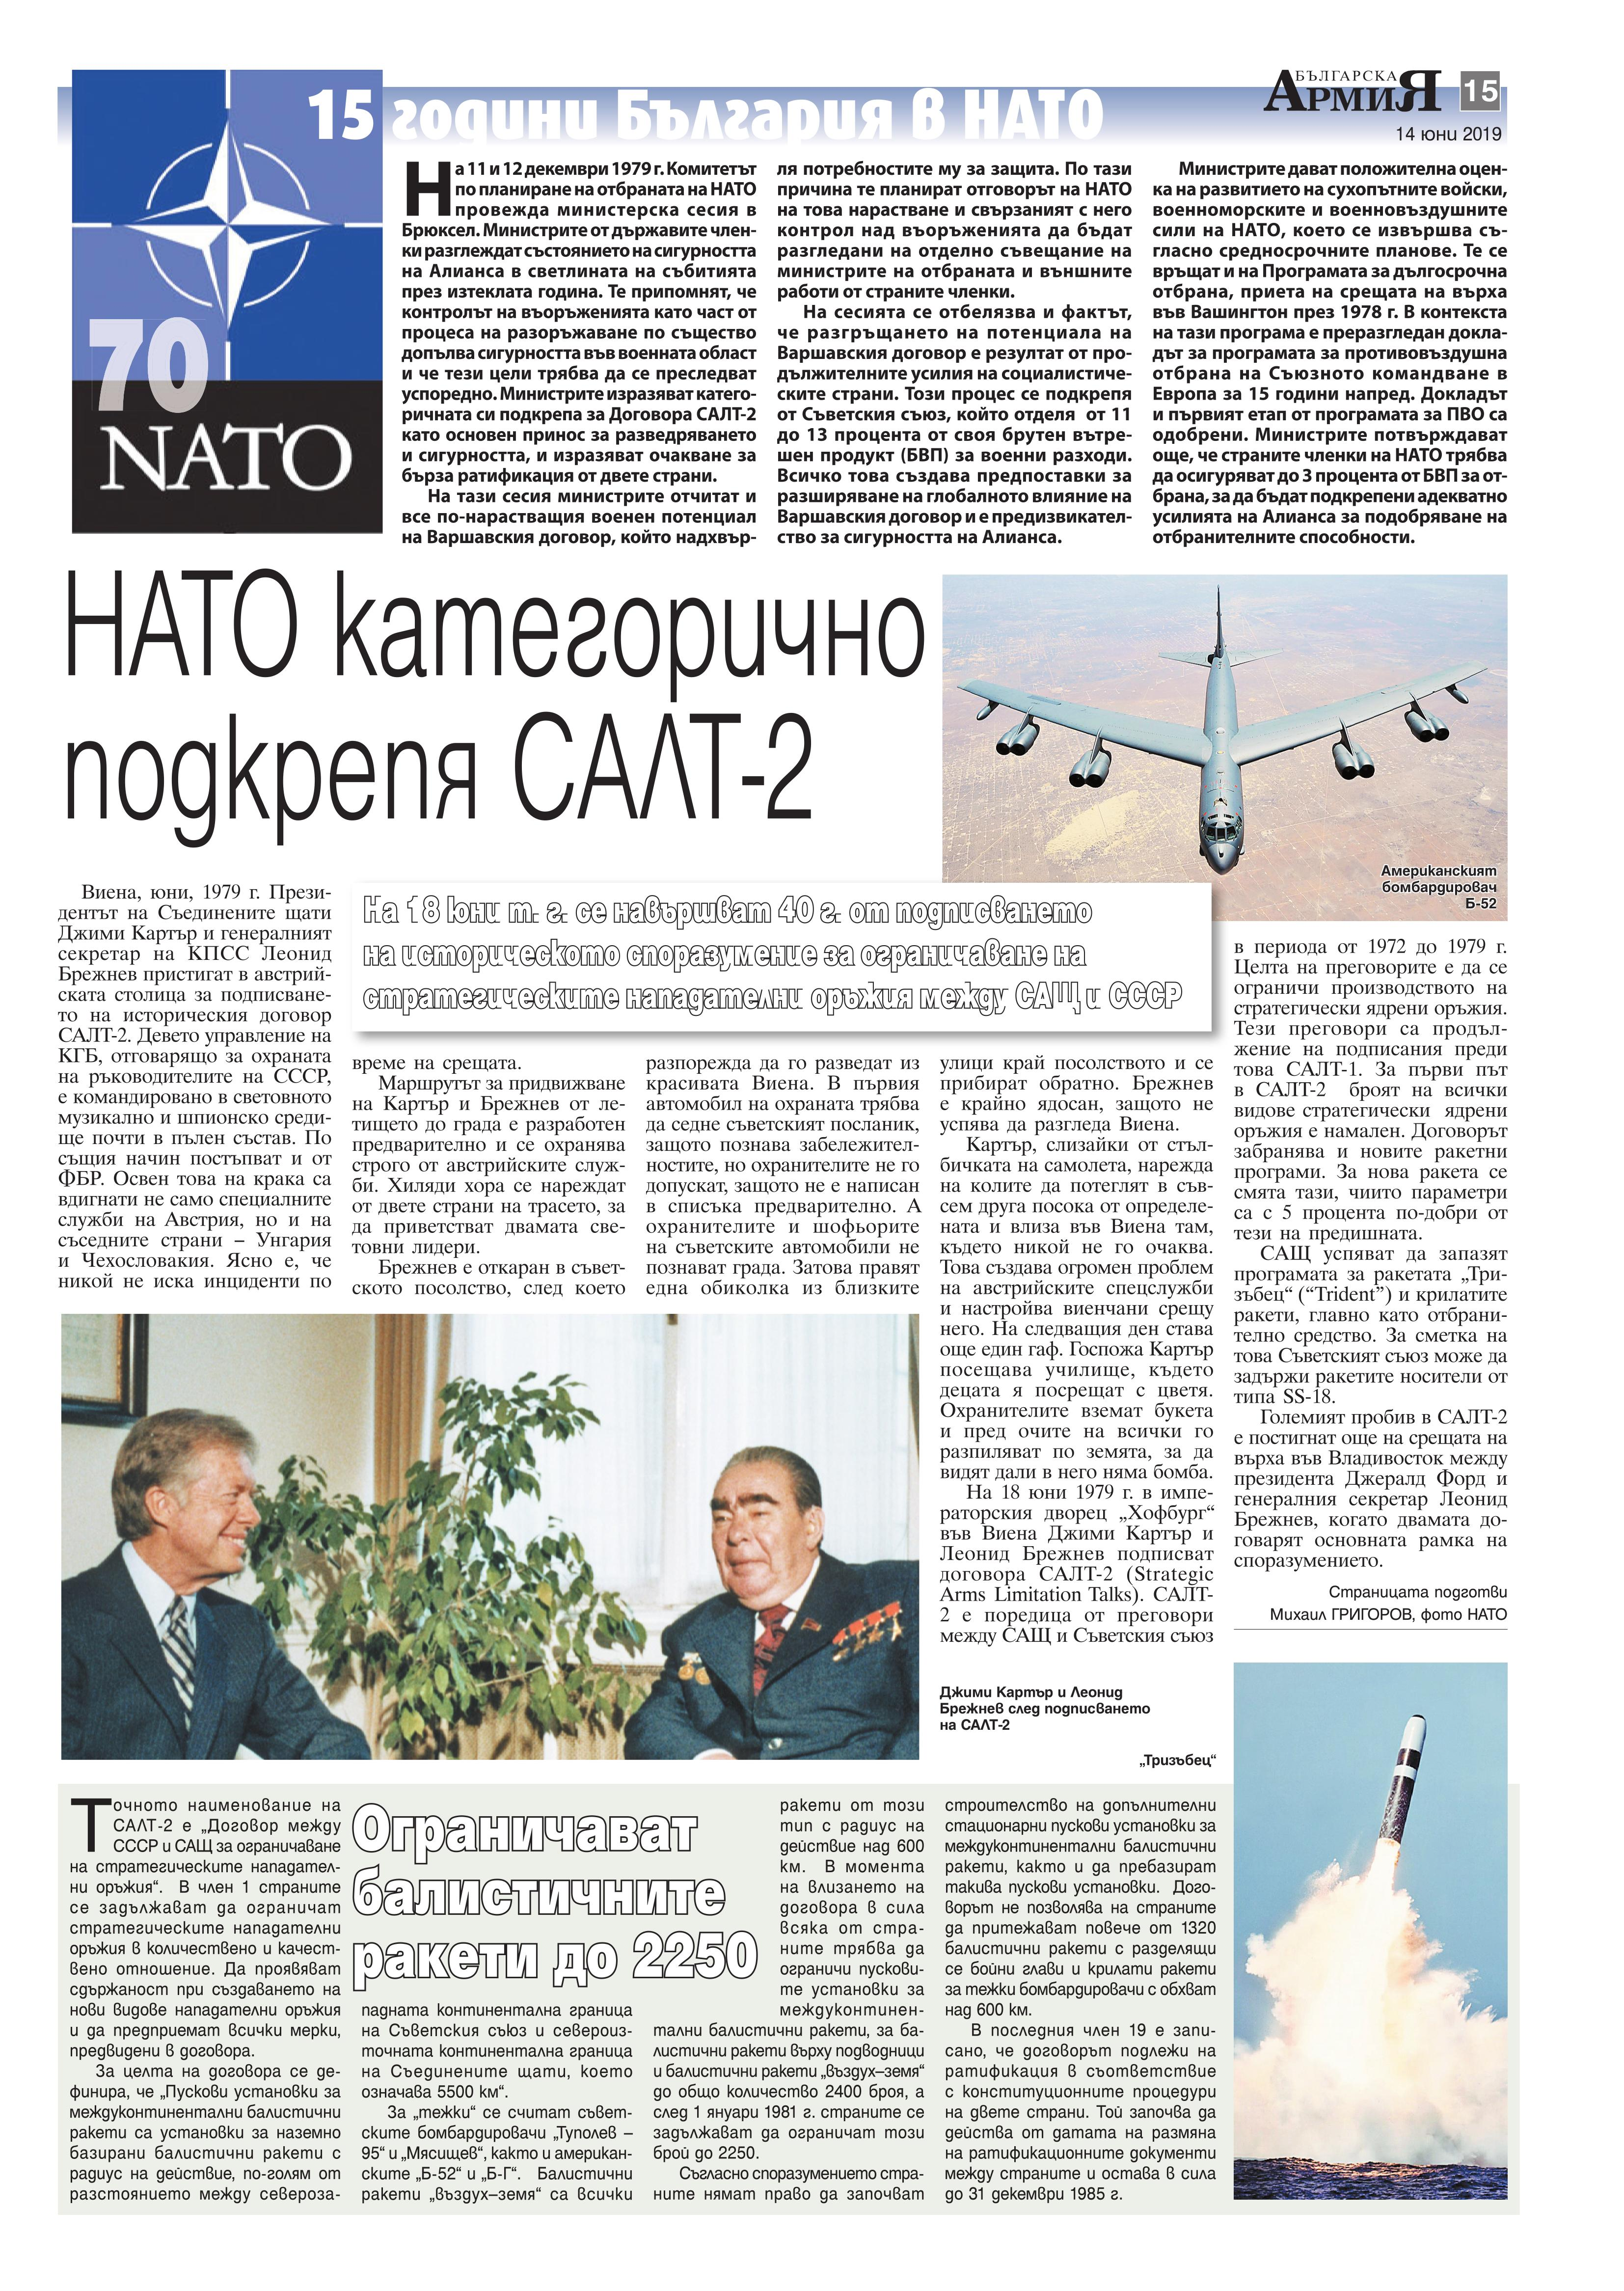 https://armymedia.bg/wp-content/uploads/2015/06/15.page1_-99.jpg